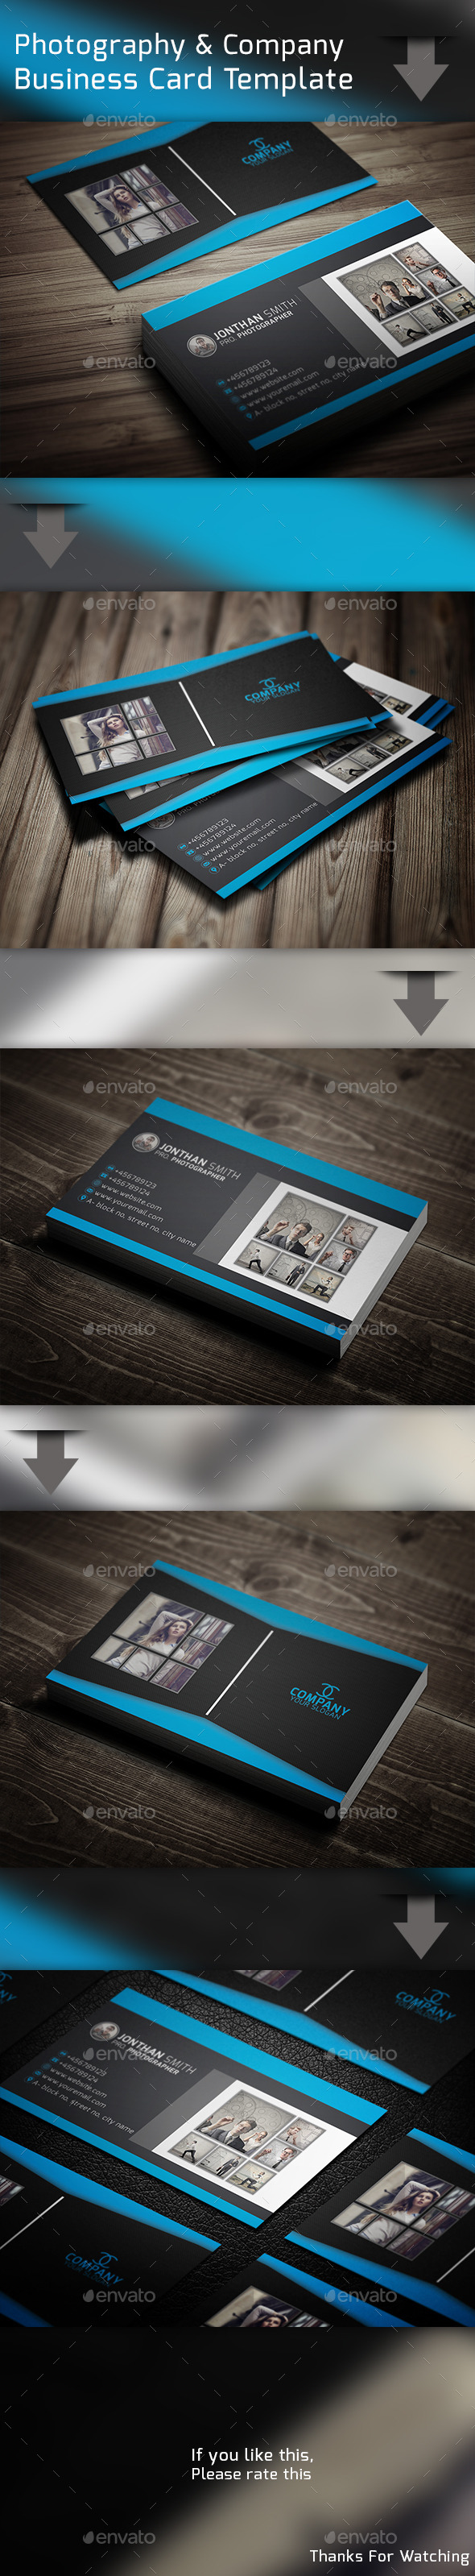 GraphicRiver Photography & Company Business Card Template 10692020